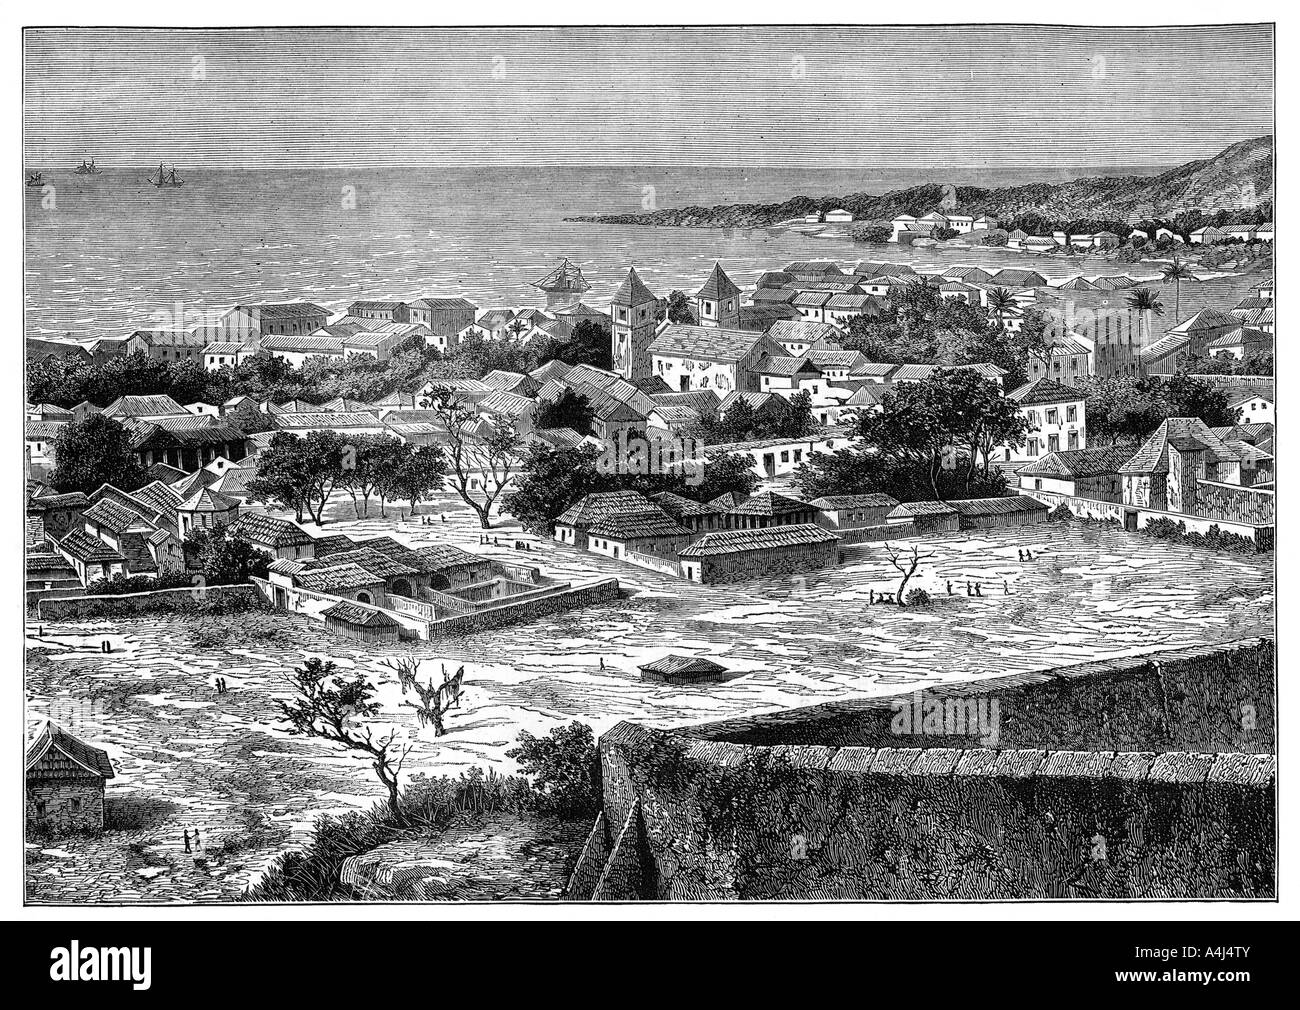 View of the roadstead and town of San Paolo de Loanda Angola West Africa c1890  - Stock Image